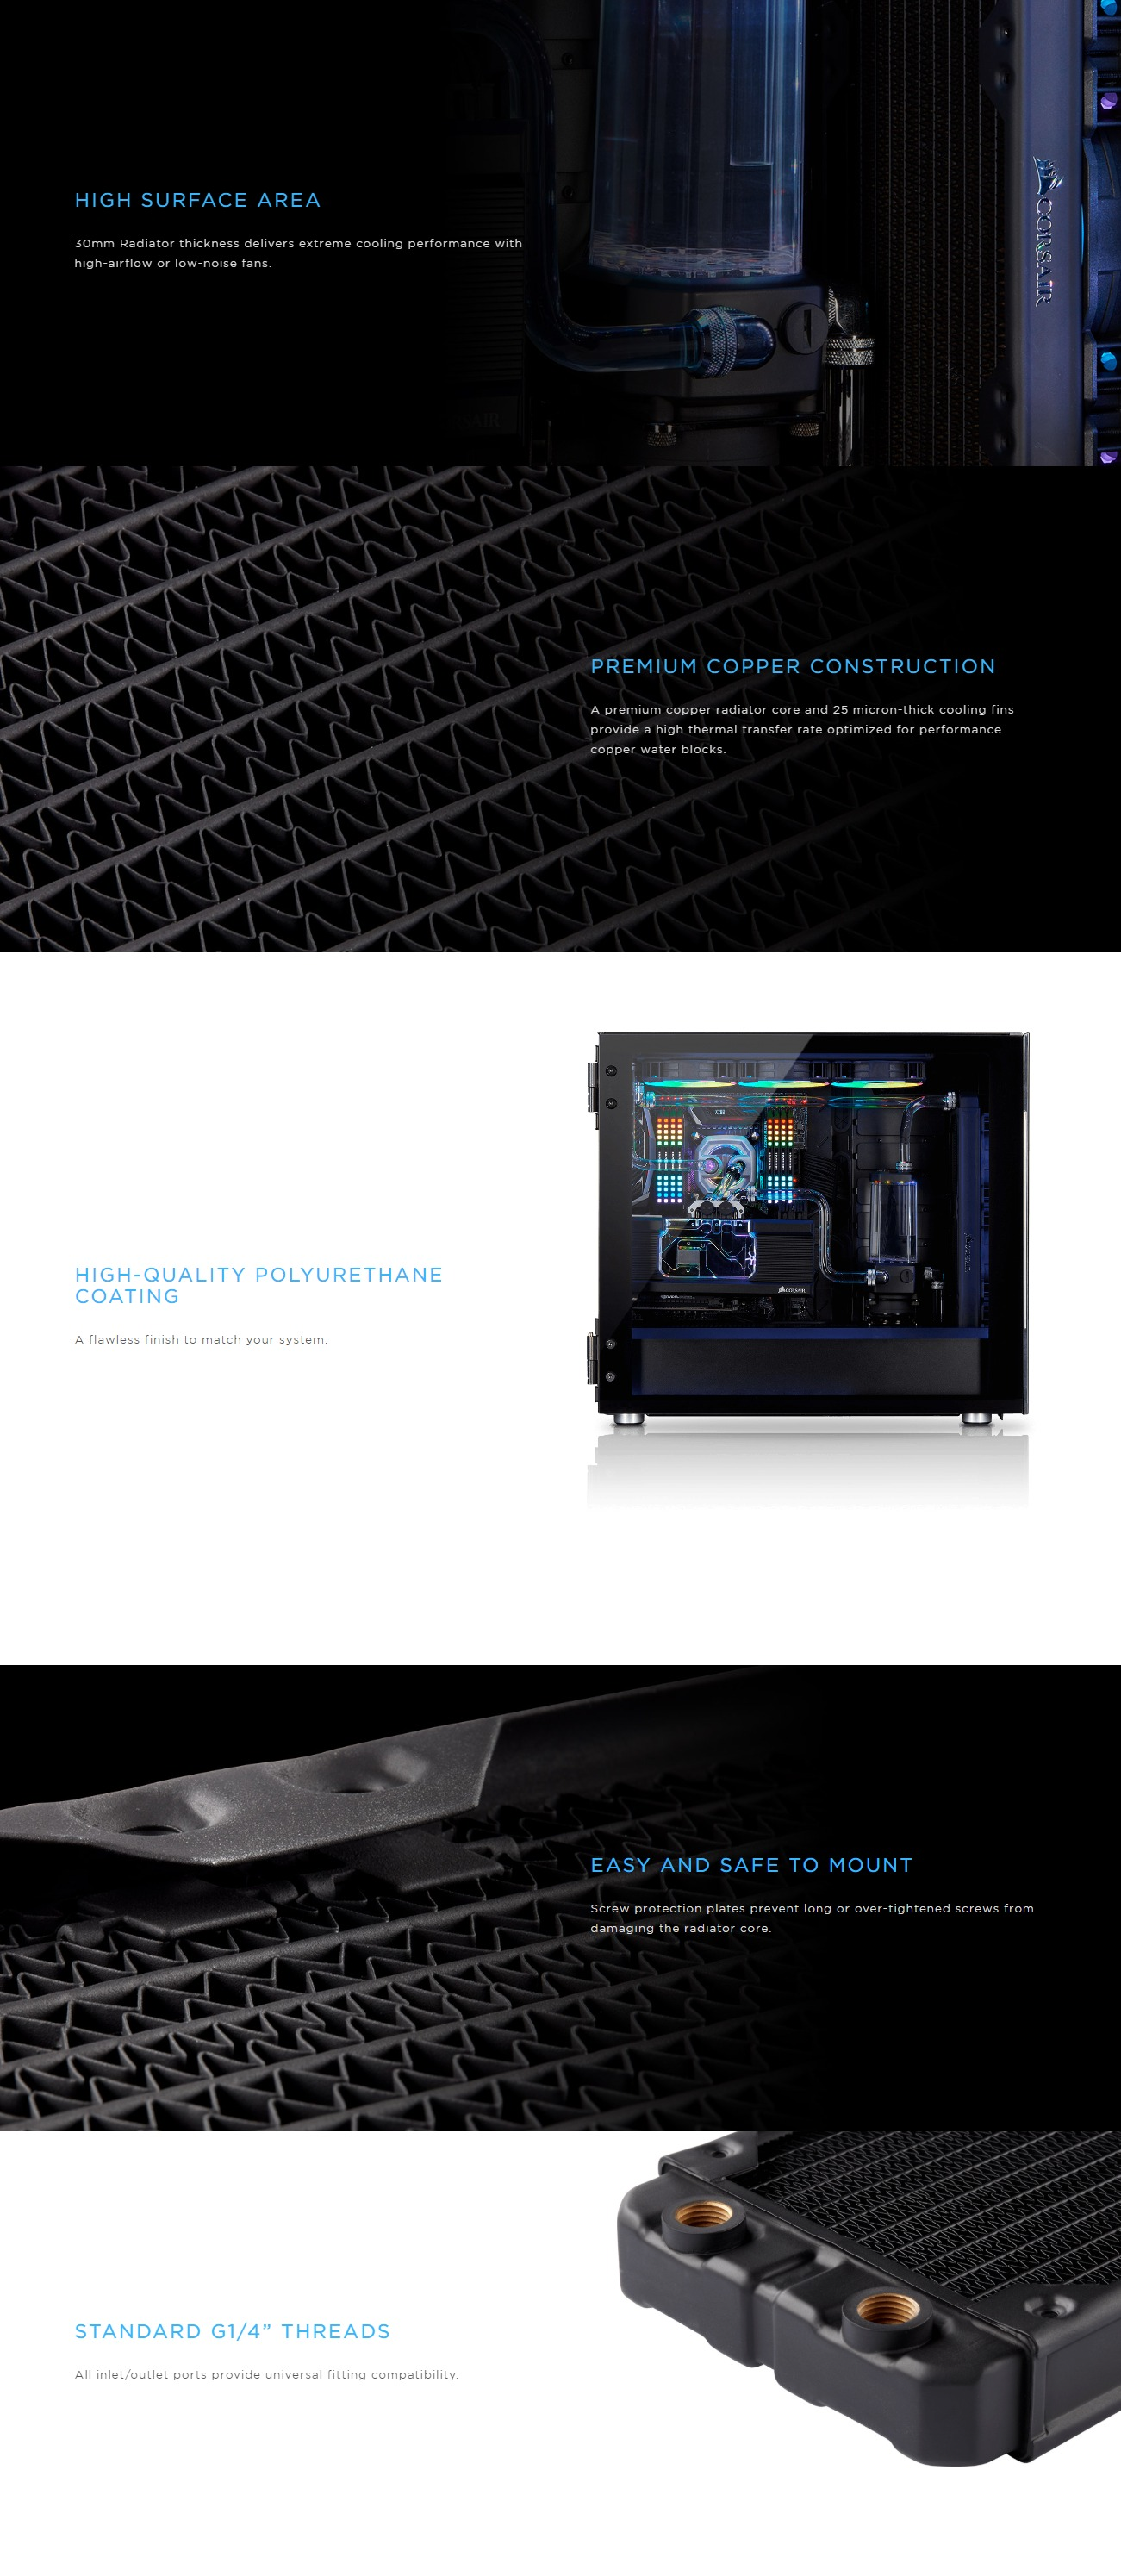 A large marketing image providing additional information about the product Corsair Hydro X Series XR5 280mm Radiator - Additional alt info not provided